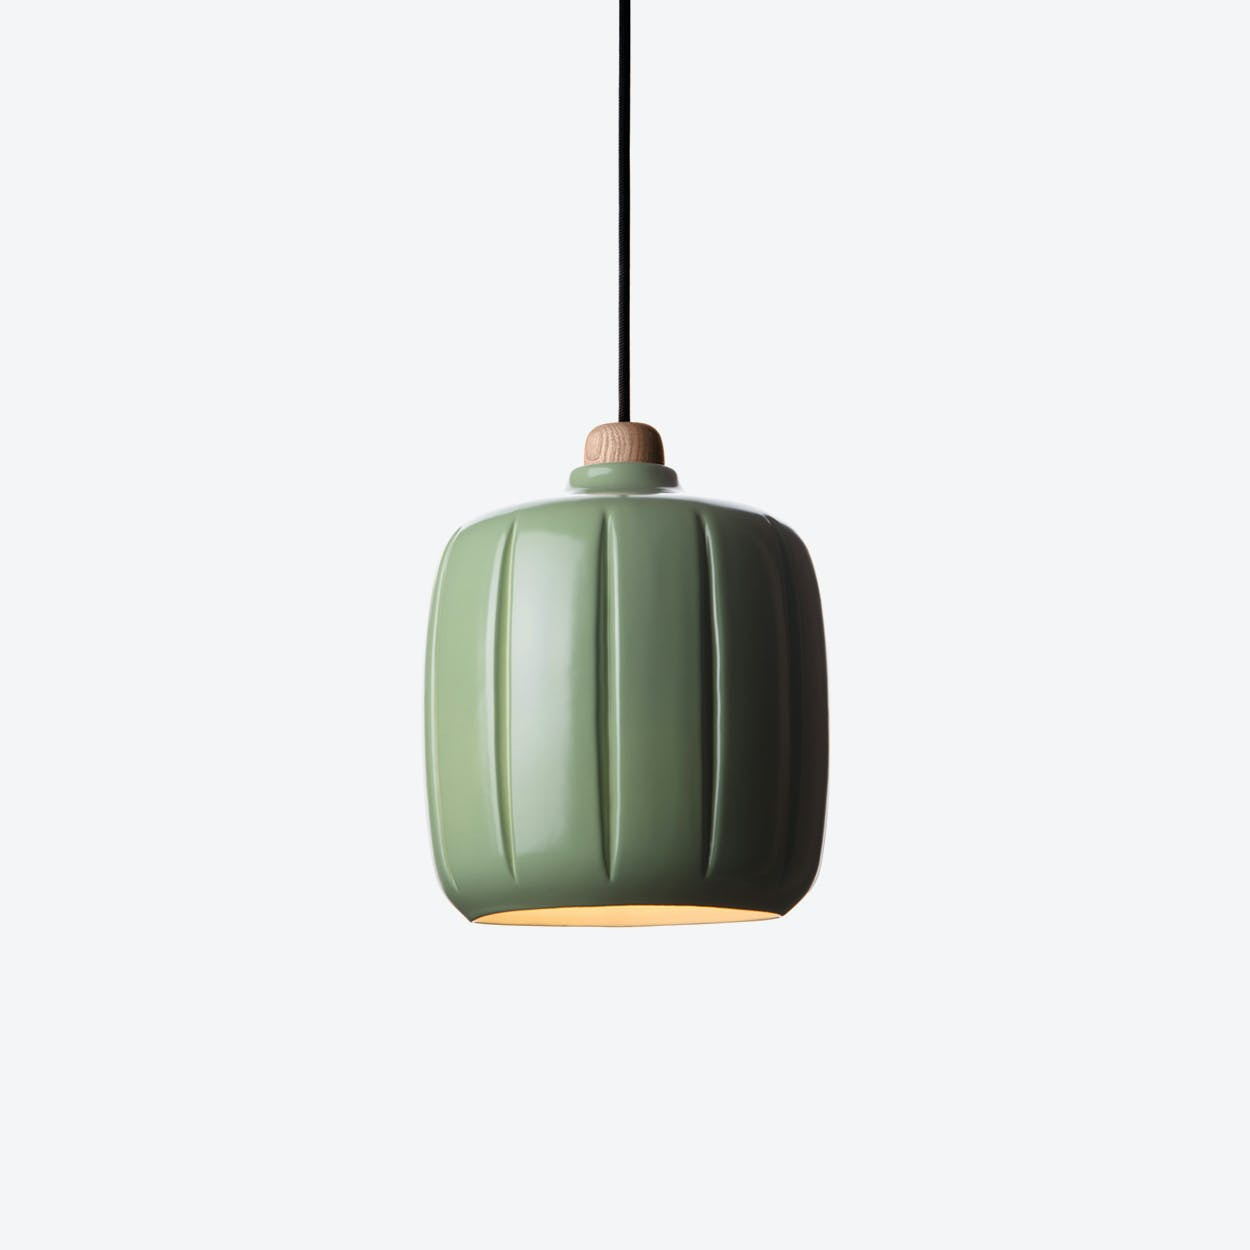 Cosse Small Pendant Lamp in Green